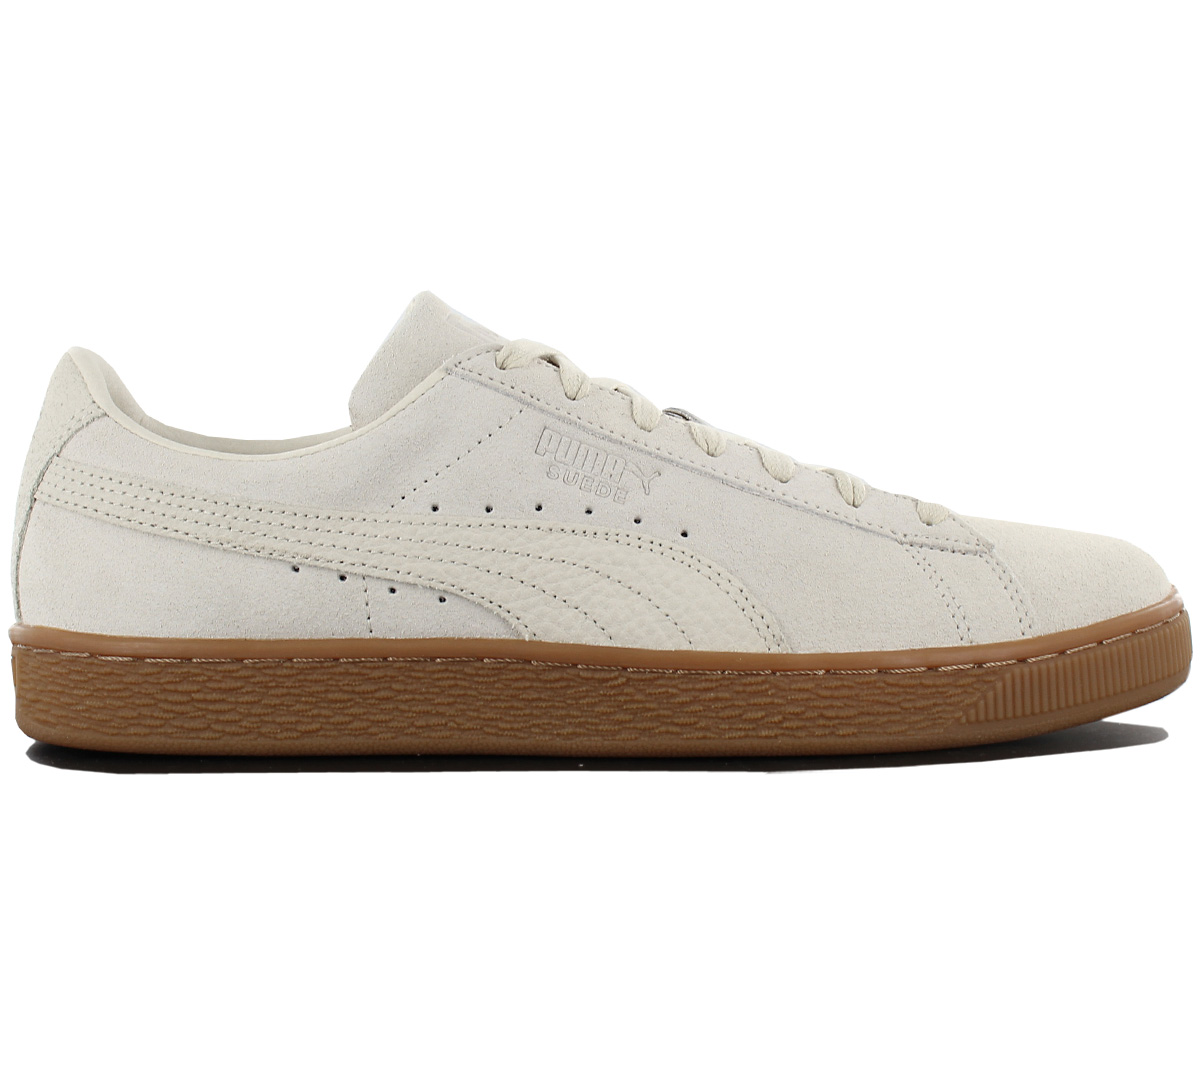 Details about Puma Suede Classic Natural Warmth Sneaker Leather Shoes Men's Women's 363869 02